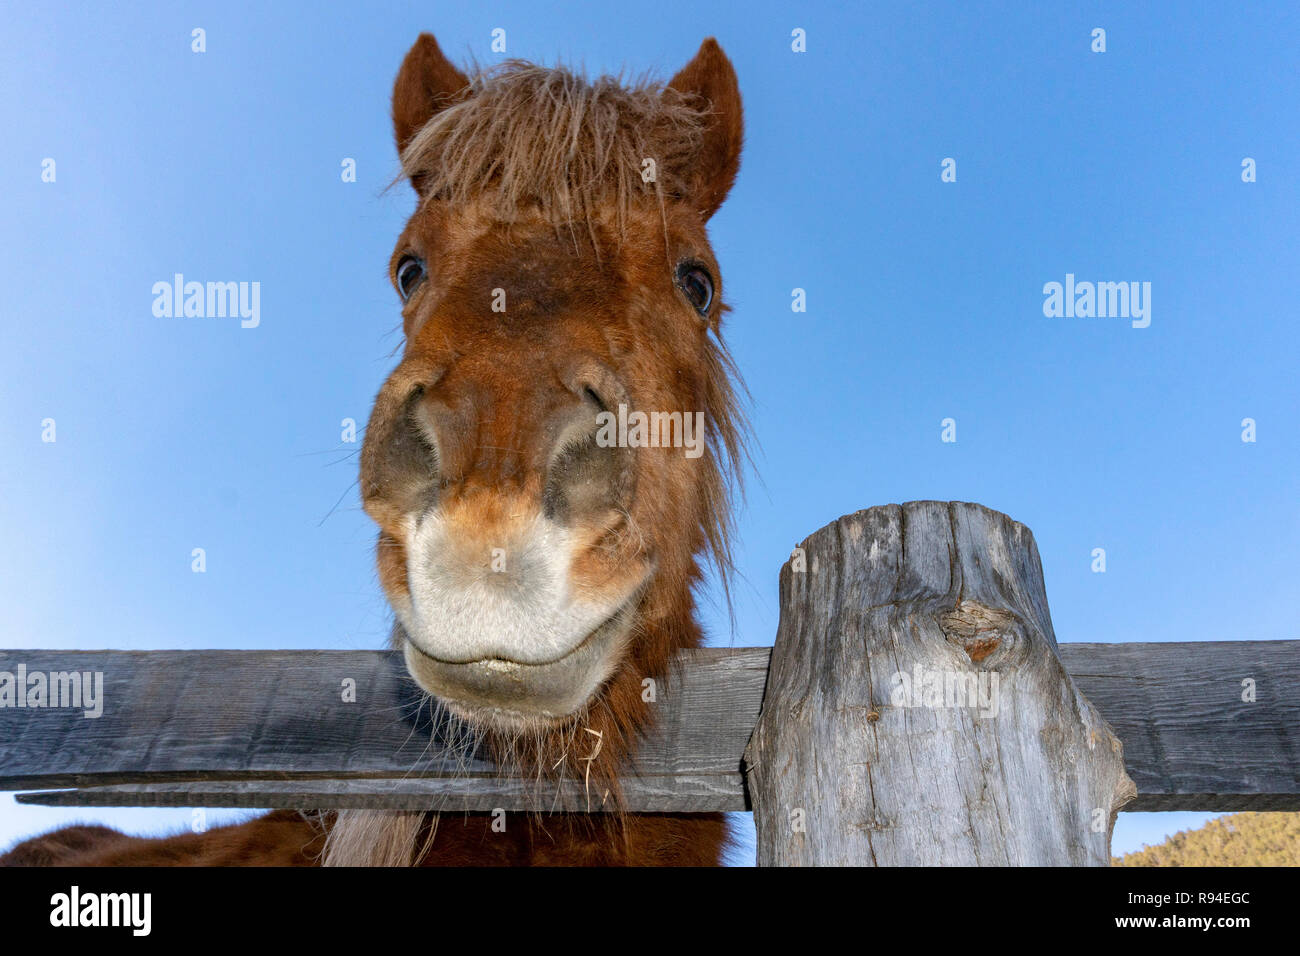 Funny Face Horse Portrait Looking At You Stock Photo Alamy